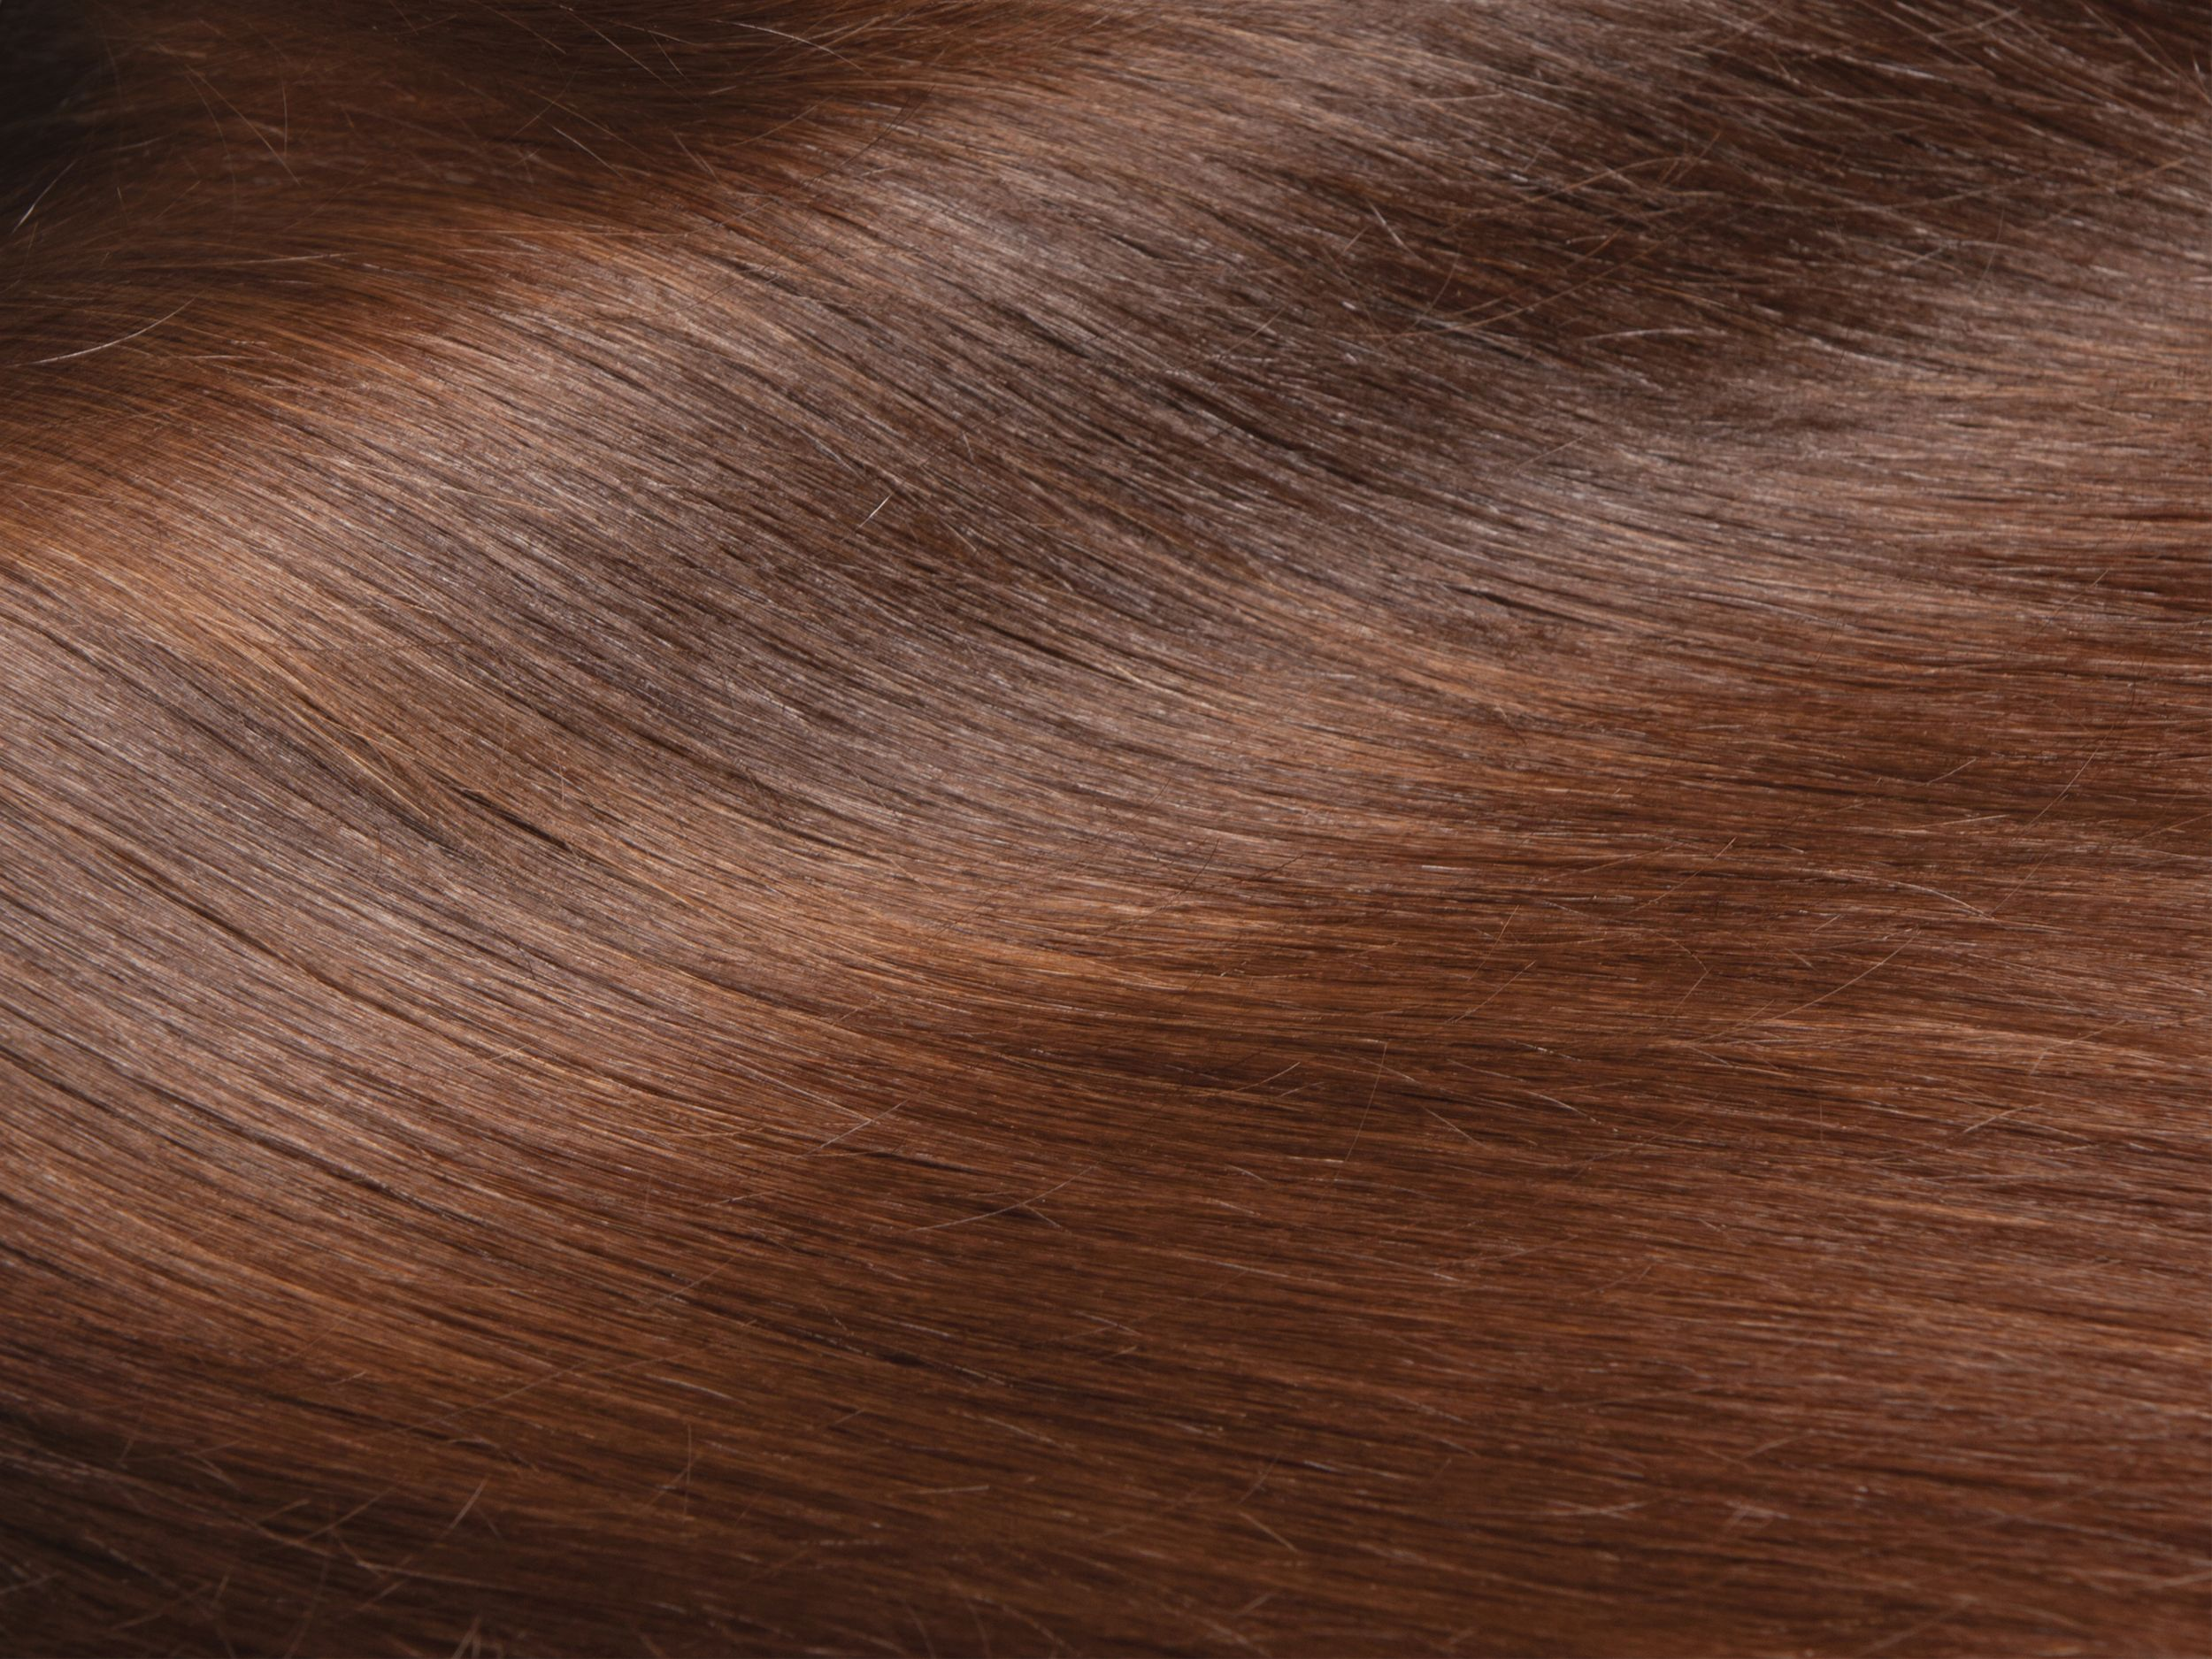 Brown Hair Texture Gallery Yopriceville High Quality Images And Transparent Png Free Clipart Brown Hair Texture Textured Hair Brown Hair